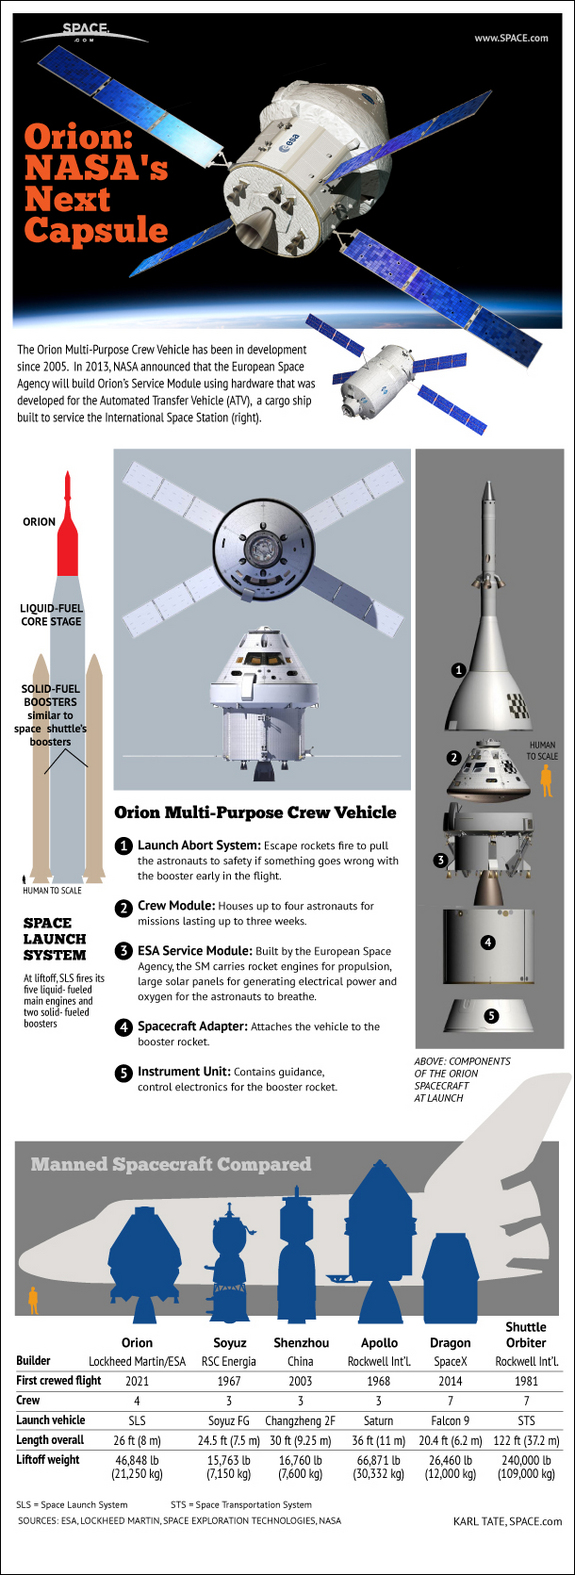 mpcv-orion-capsule-comparison-apollo-shutttle-infographic-130117a-02.jpg